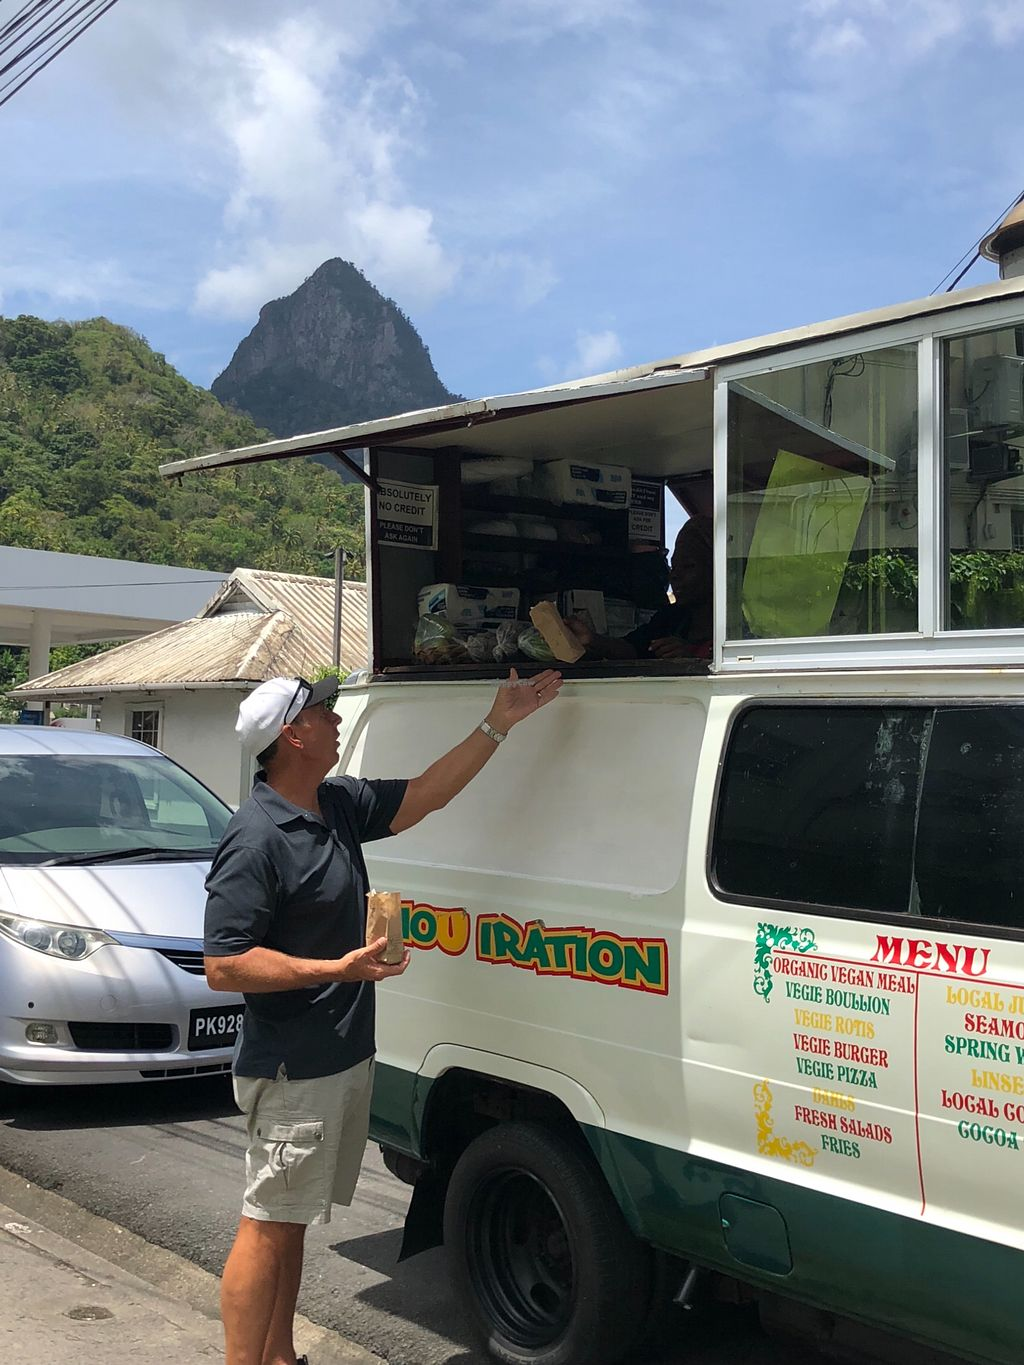 """Photo of Sa Nou Iration Food Truck  by <a href=""""/members/profile/meefamily"""">meefamily</a> <br/>The awesome food truck with food lovingly made by Sharon <br/> May 16, 2018  - <a href='/contact/abuse/image/91090/400575'>Report</a>"""